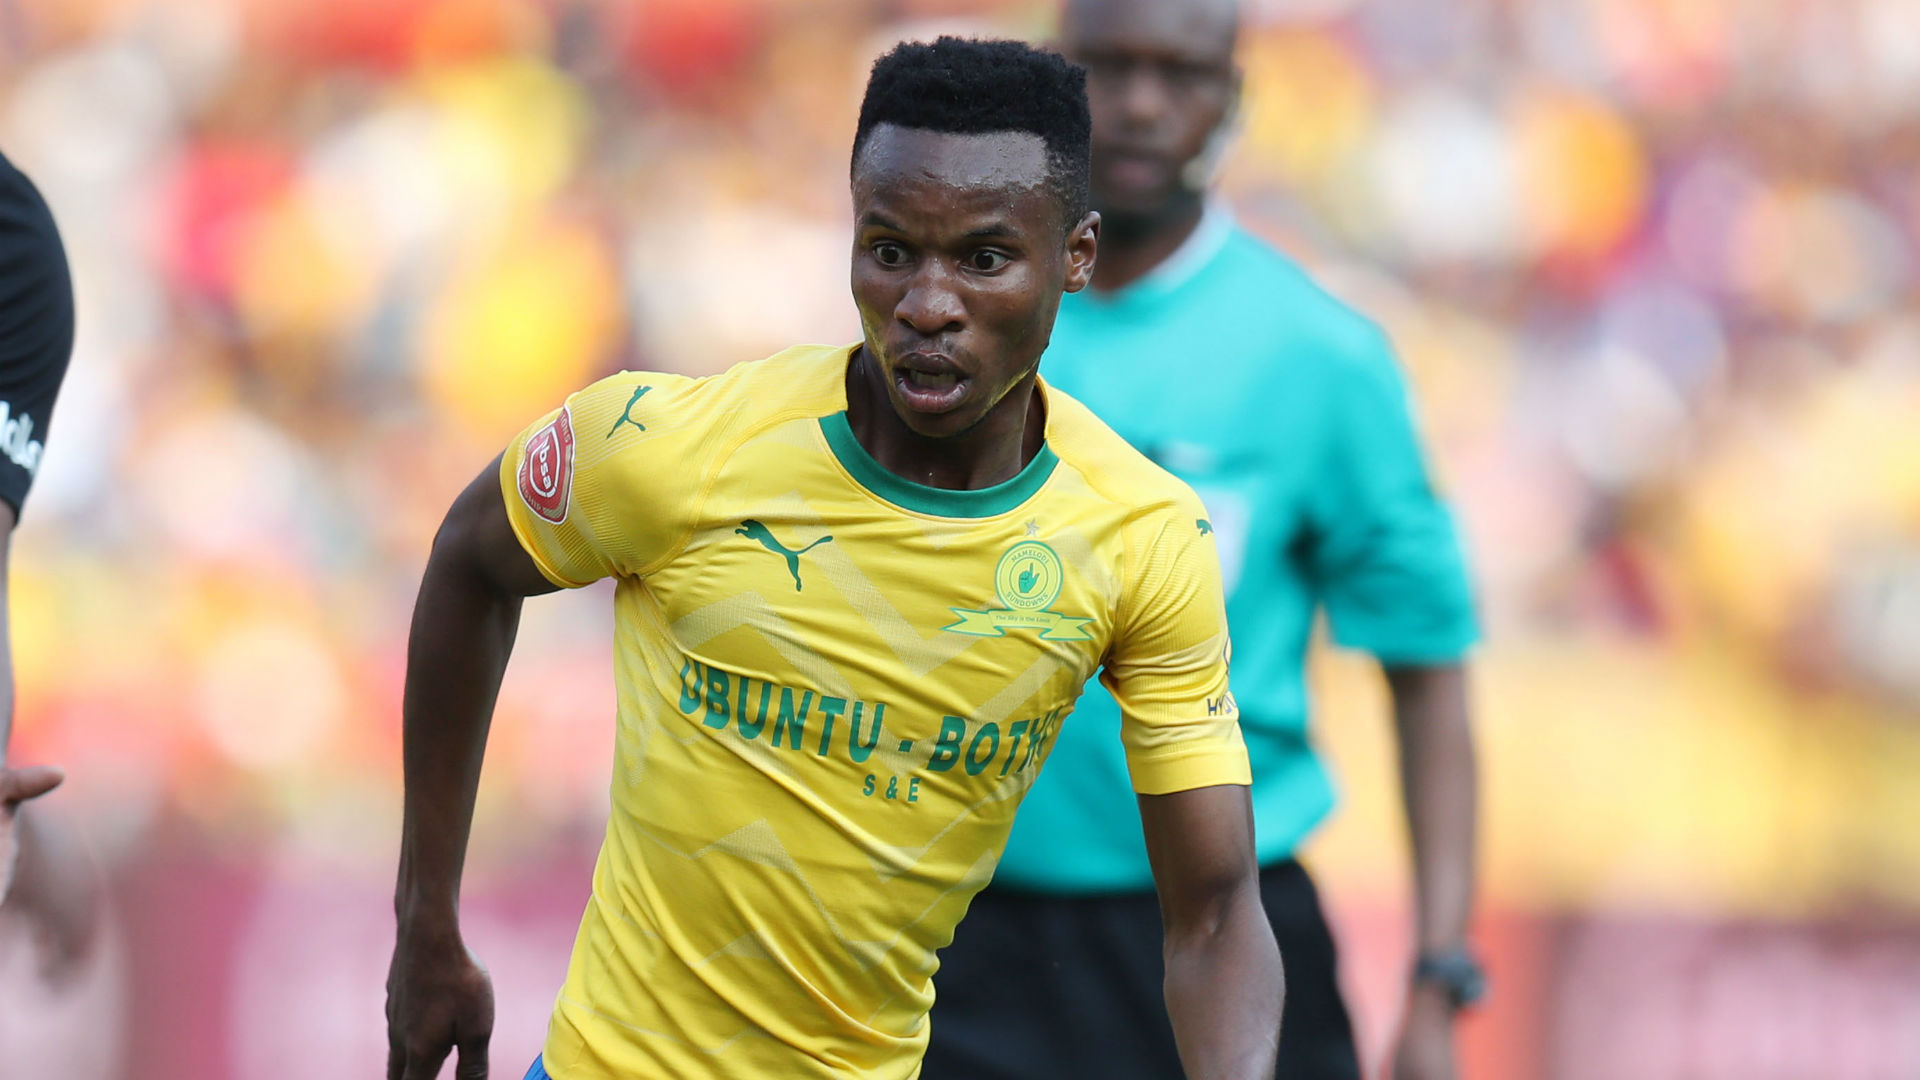 Themba Zwane, Sundowns, August 2018